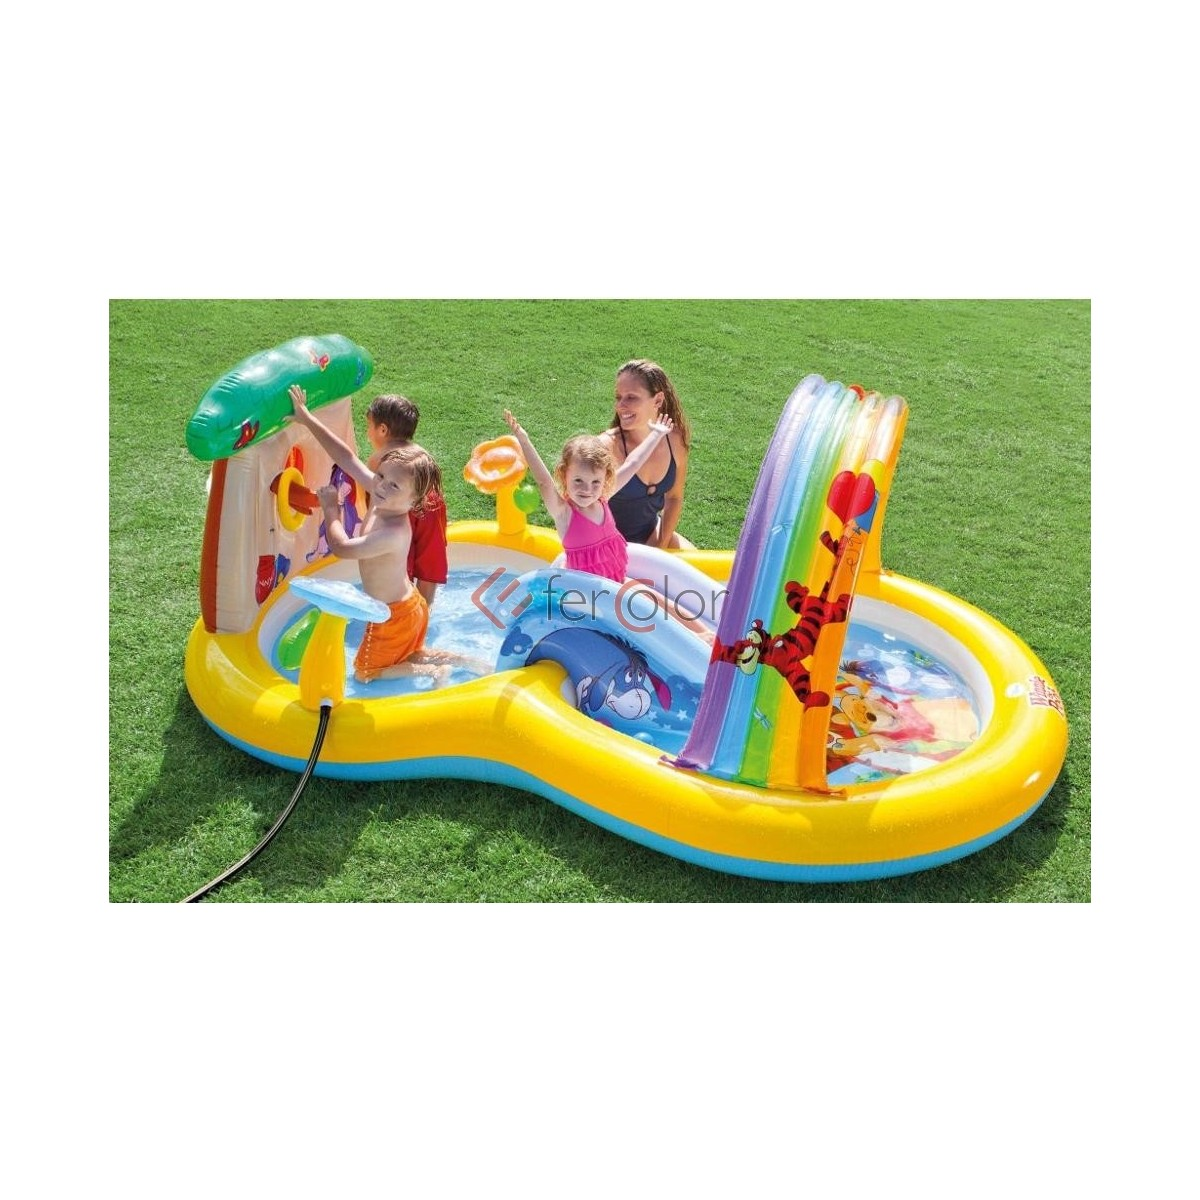 Piscina Gonfiabili Piscina Gonfiabile Intex Bambini Playcenter Winnie The